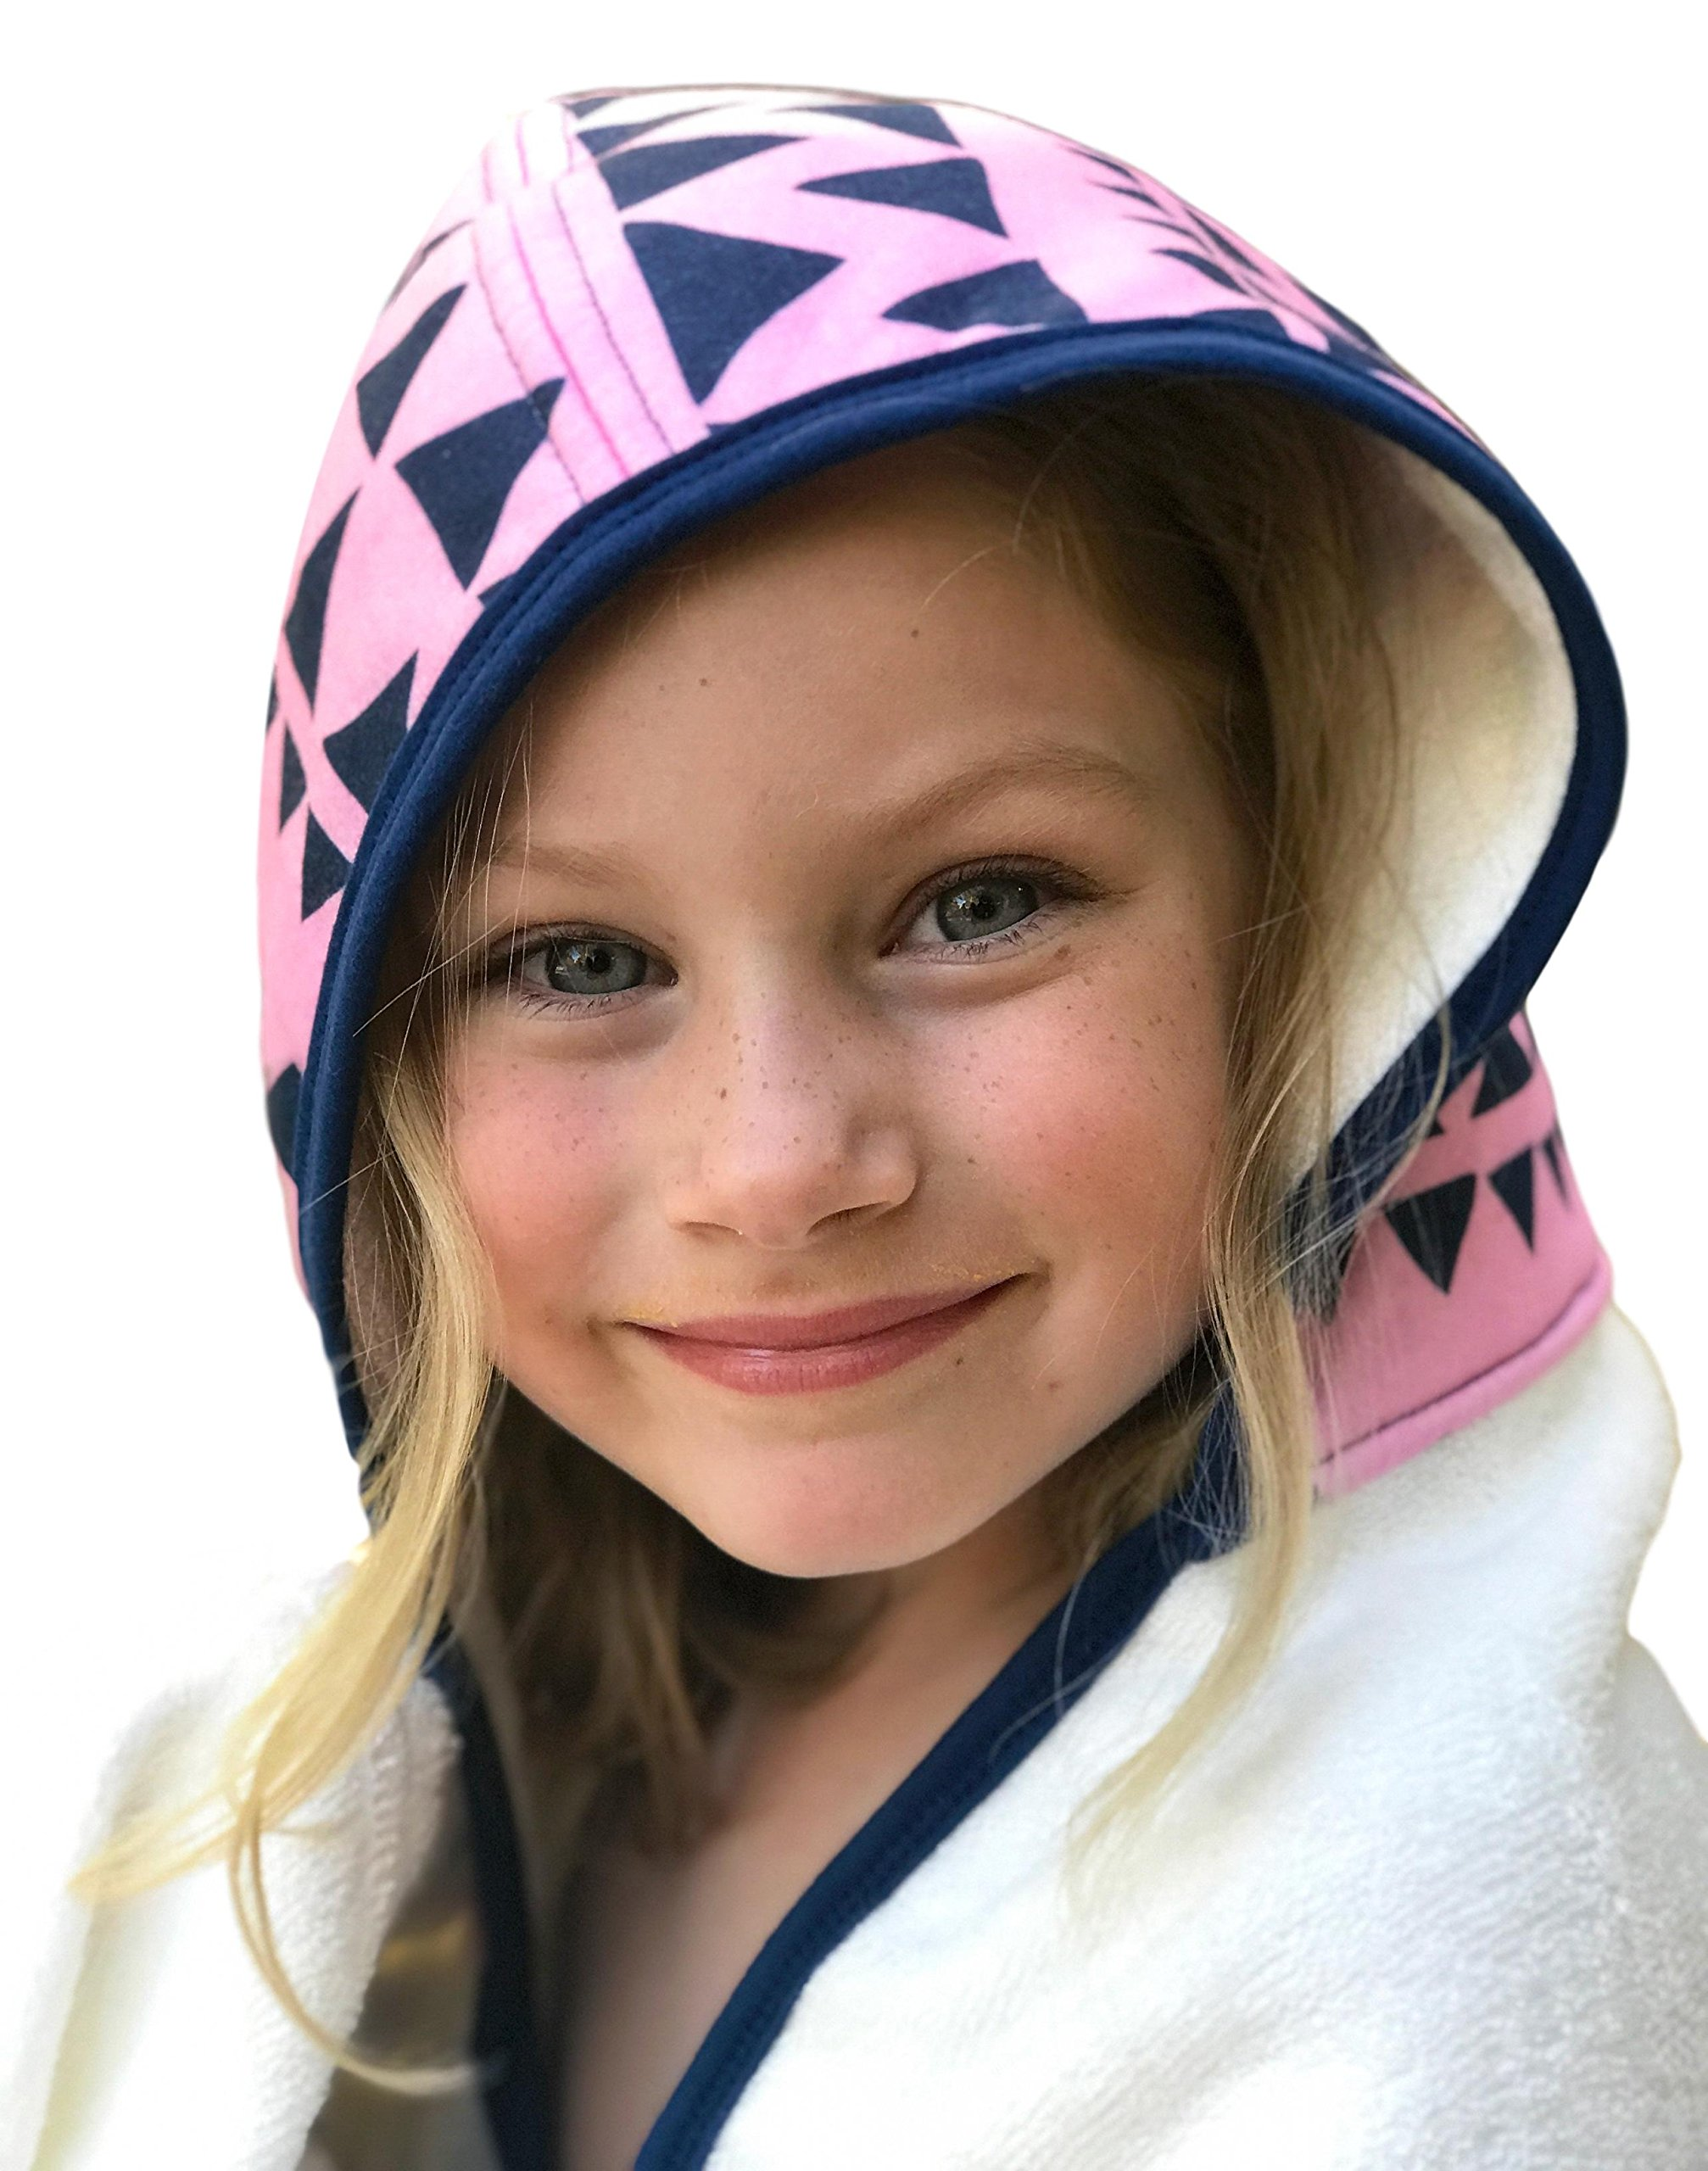 Kids Hooded Bath Towel | Extra Soft & Thick 500 GSM Bamboo Terry | Hypoallergenic & Eco-Friendly | Extra Large Toddler to Kids Bath Towel with Hood for Girls After Bath, Beach, Pool, or Swim by Land of the Wee